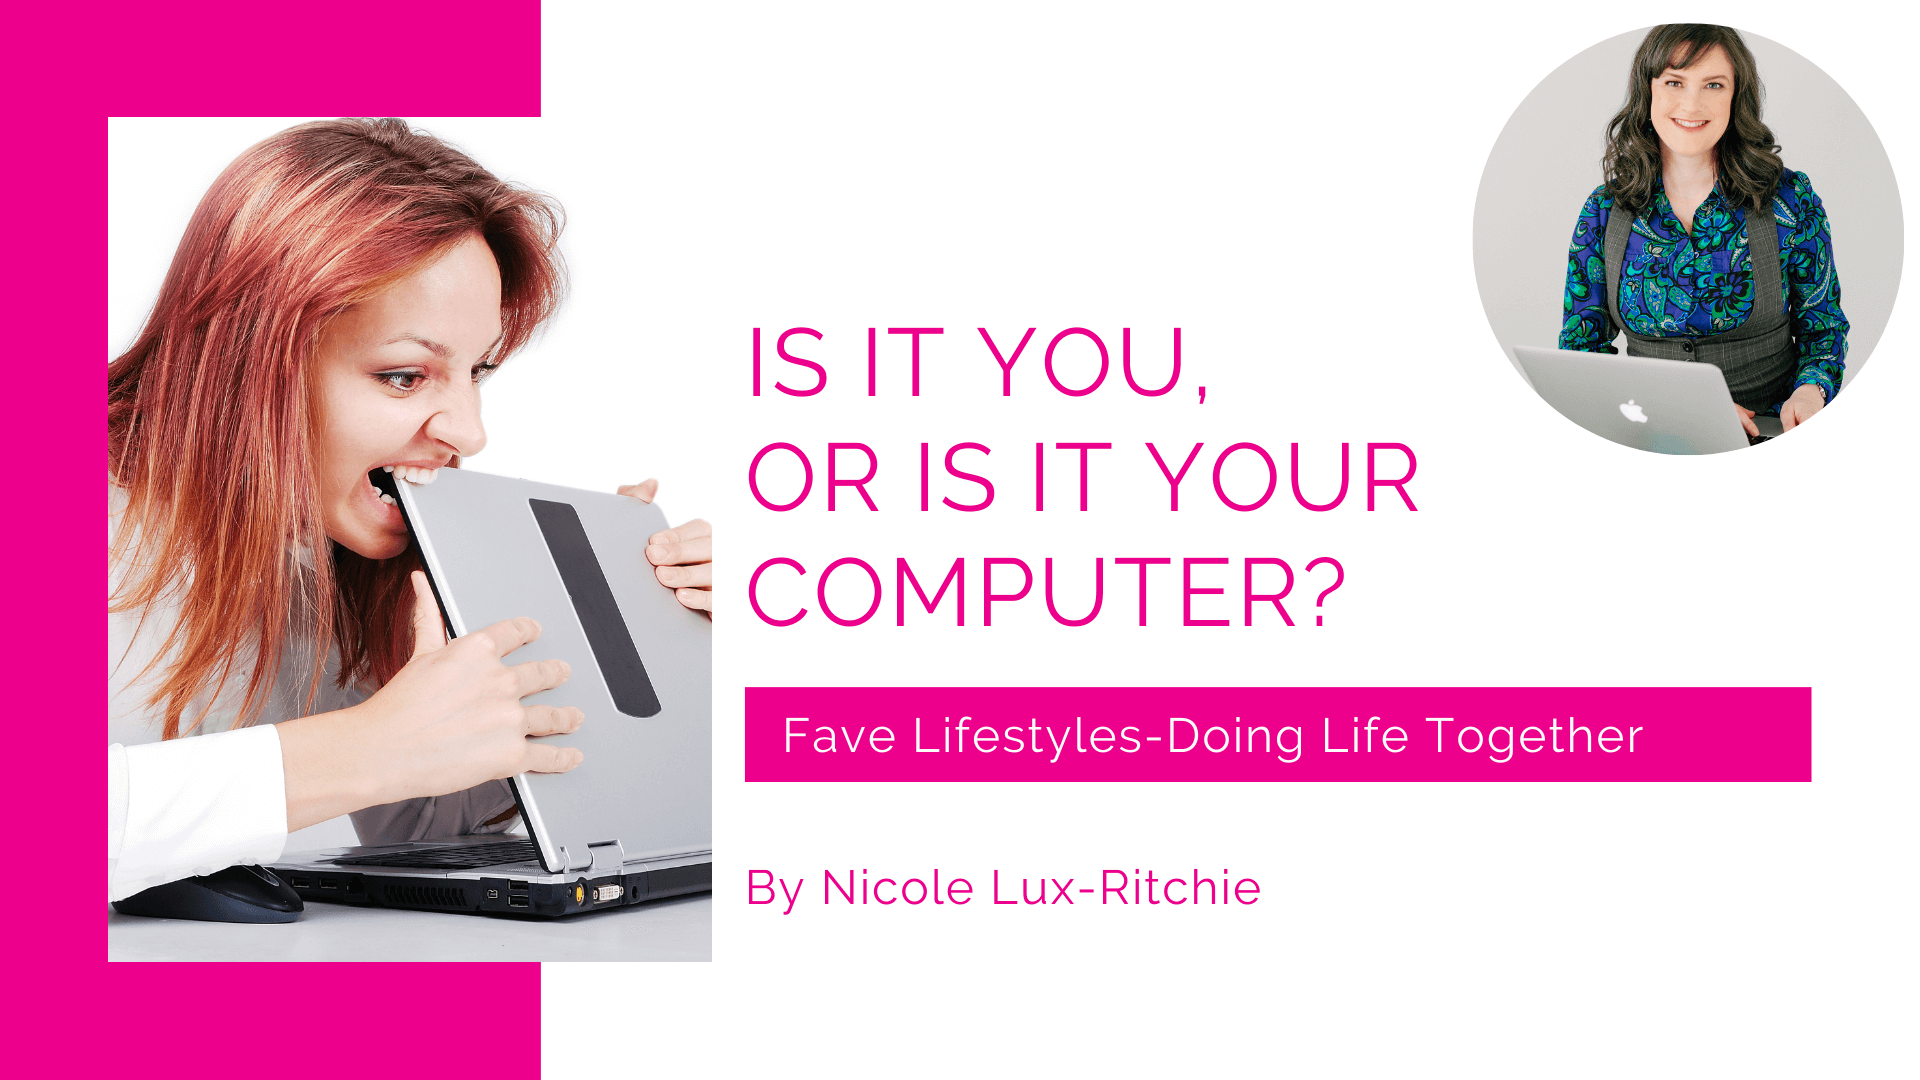 Is it You, or is it your computer?